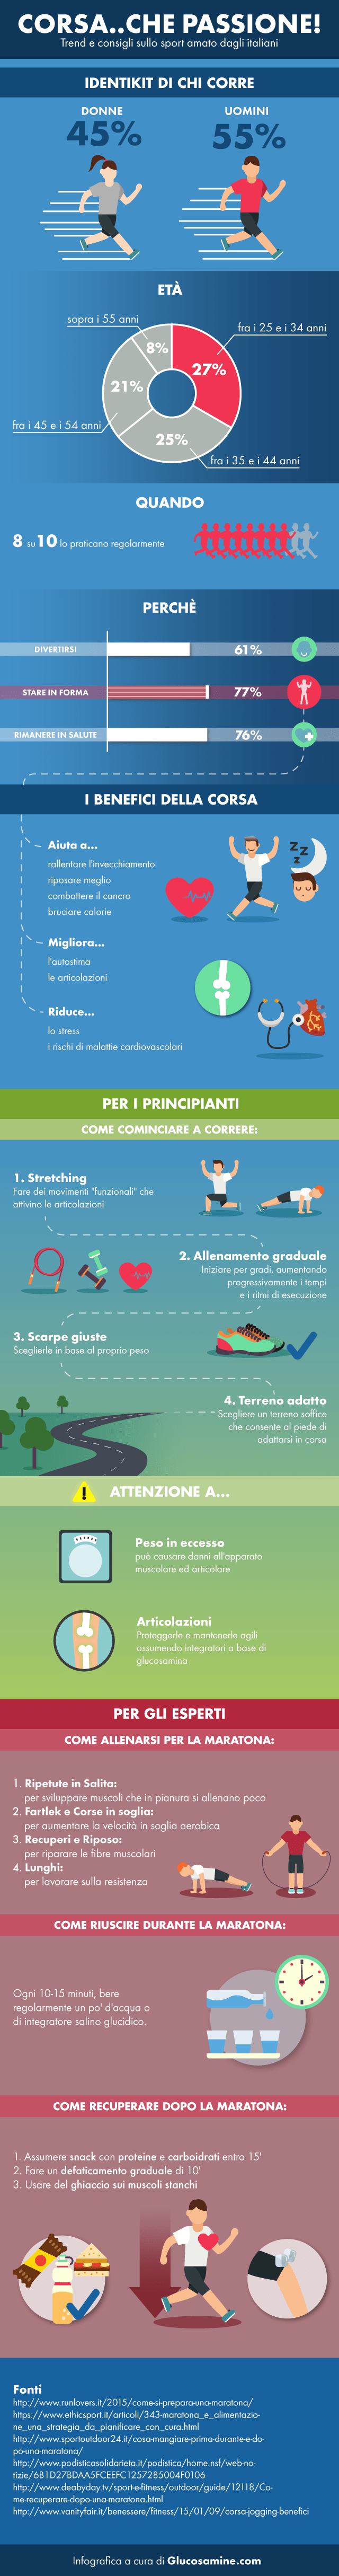 https://www.glucosamine.com/images/infografica-corsa.png